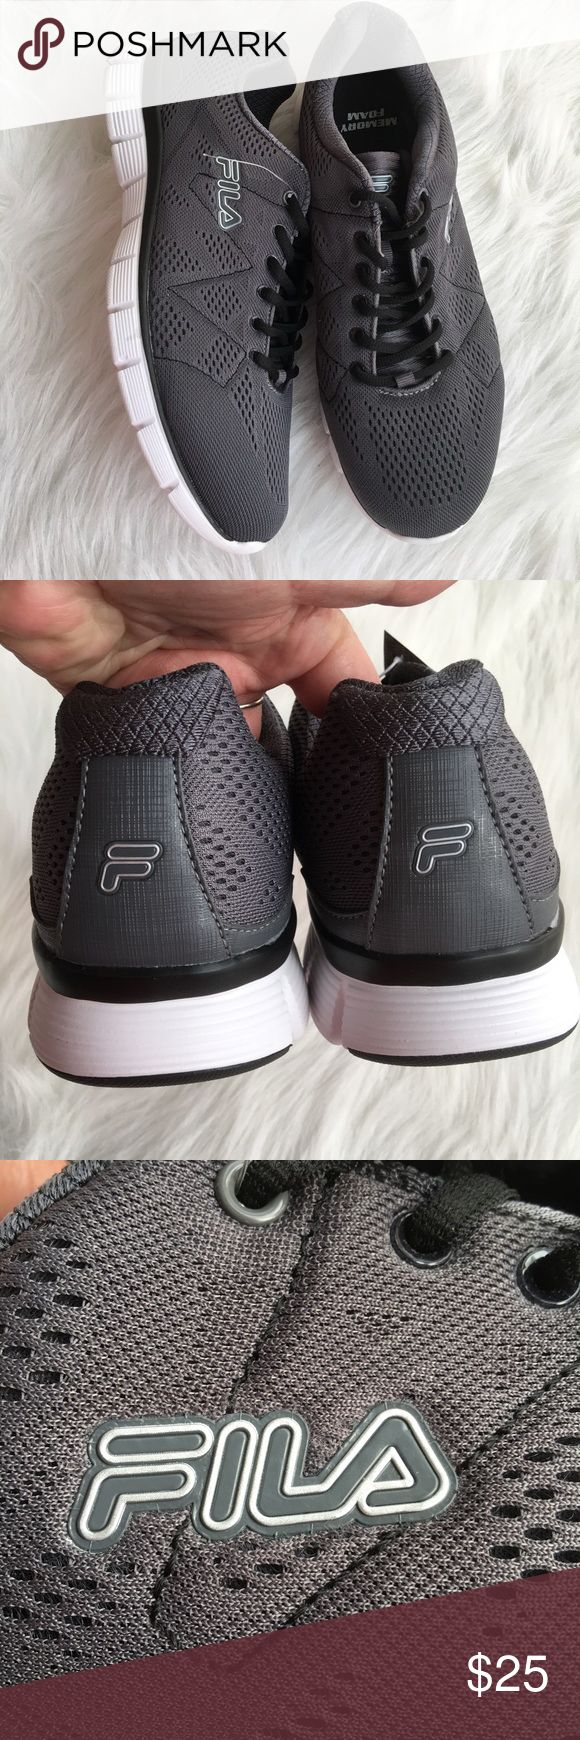 Mens Kitchen Shoes With Memory Foam